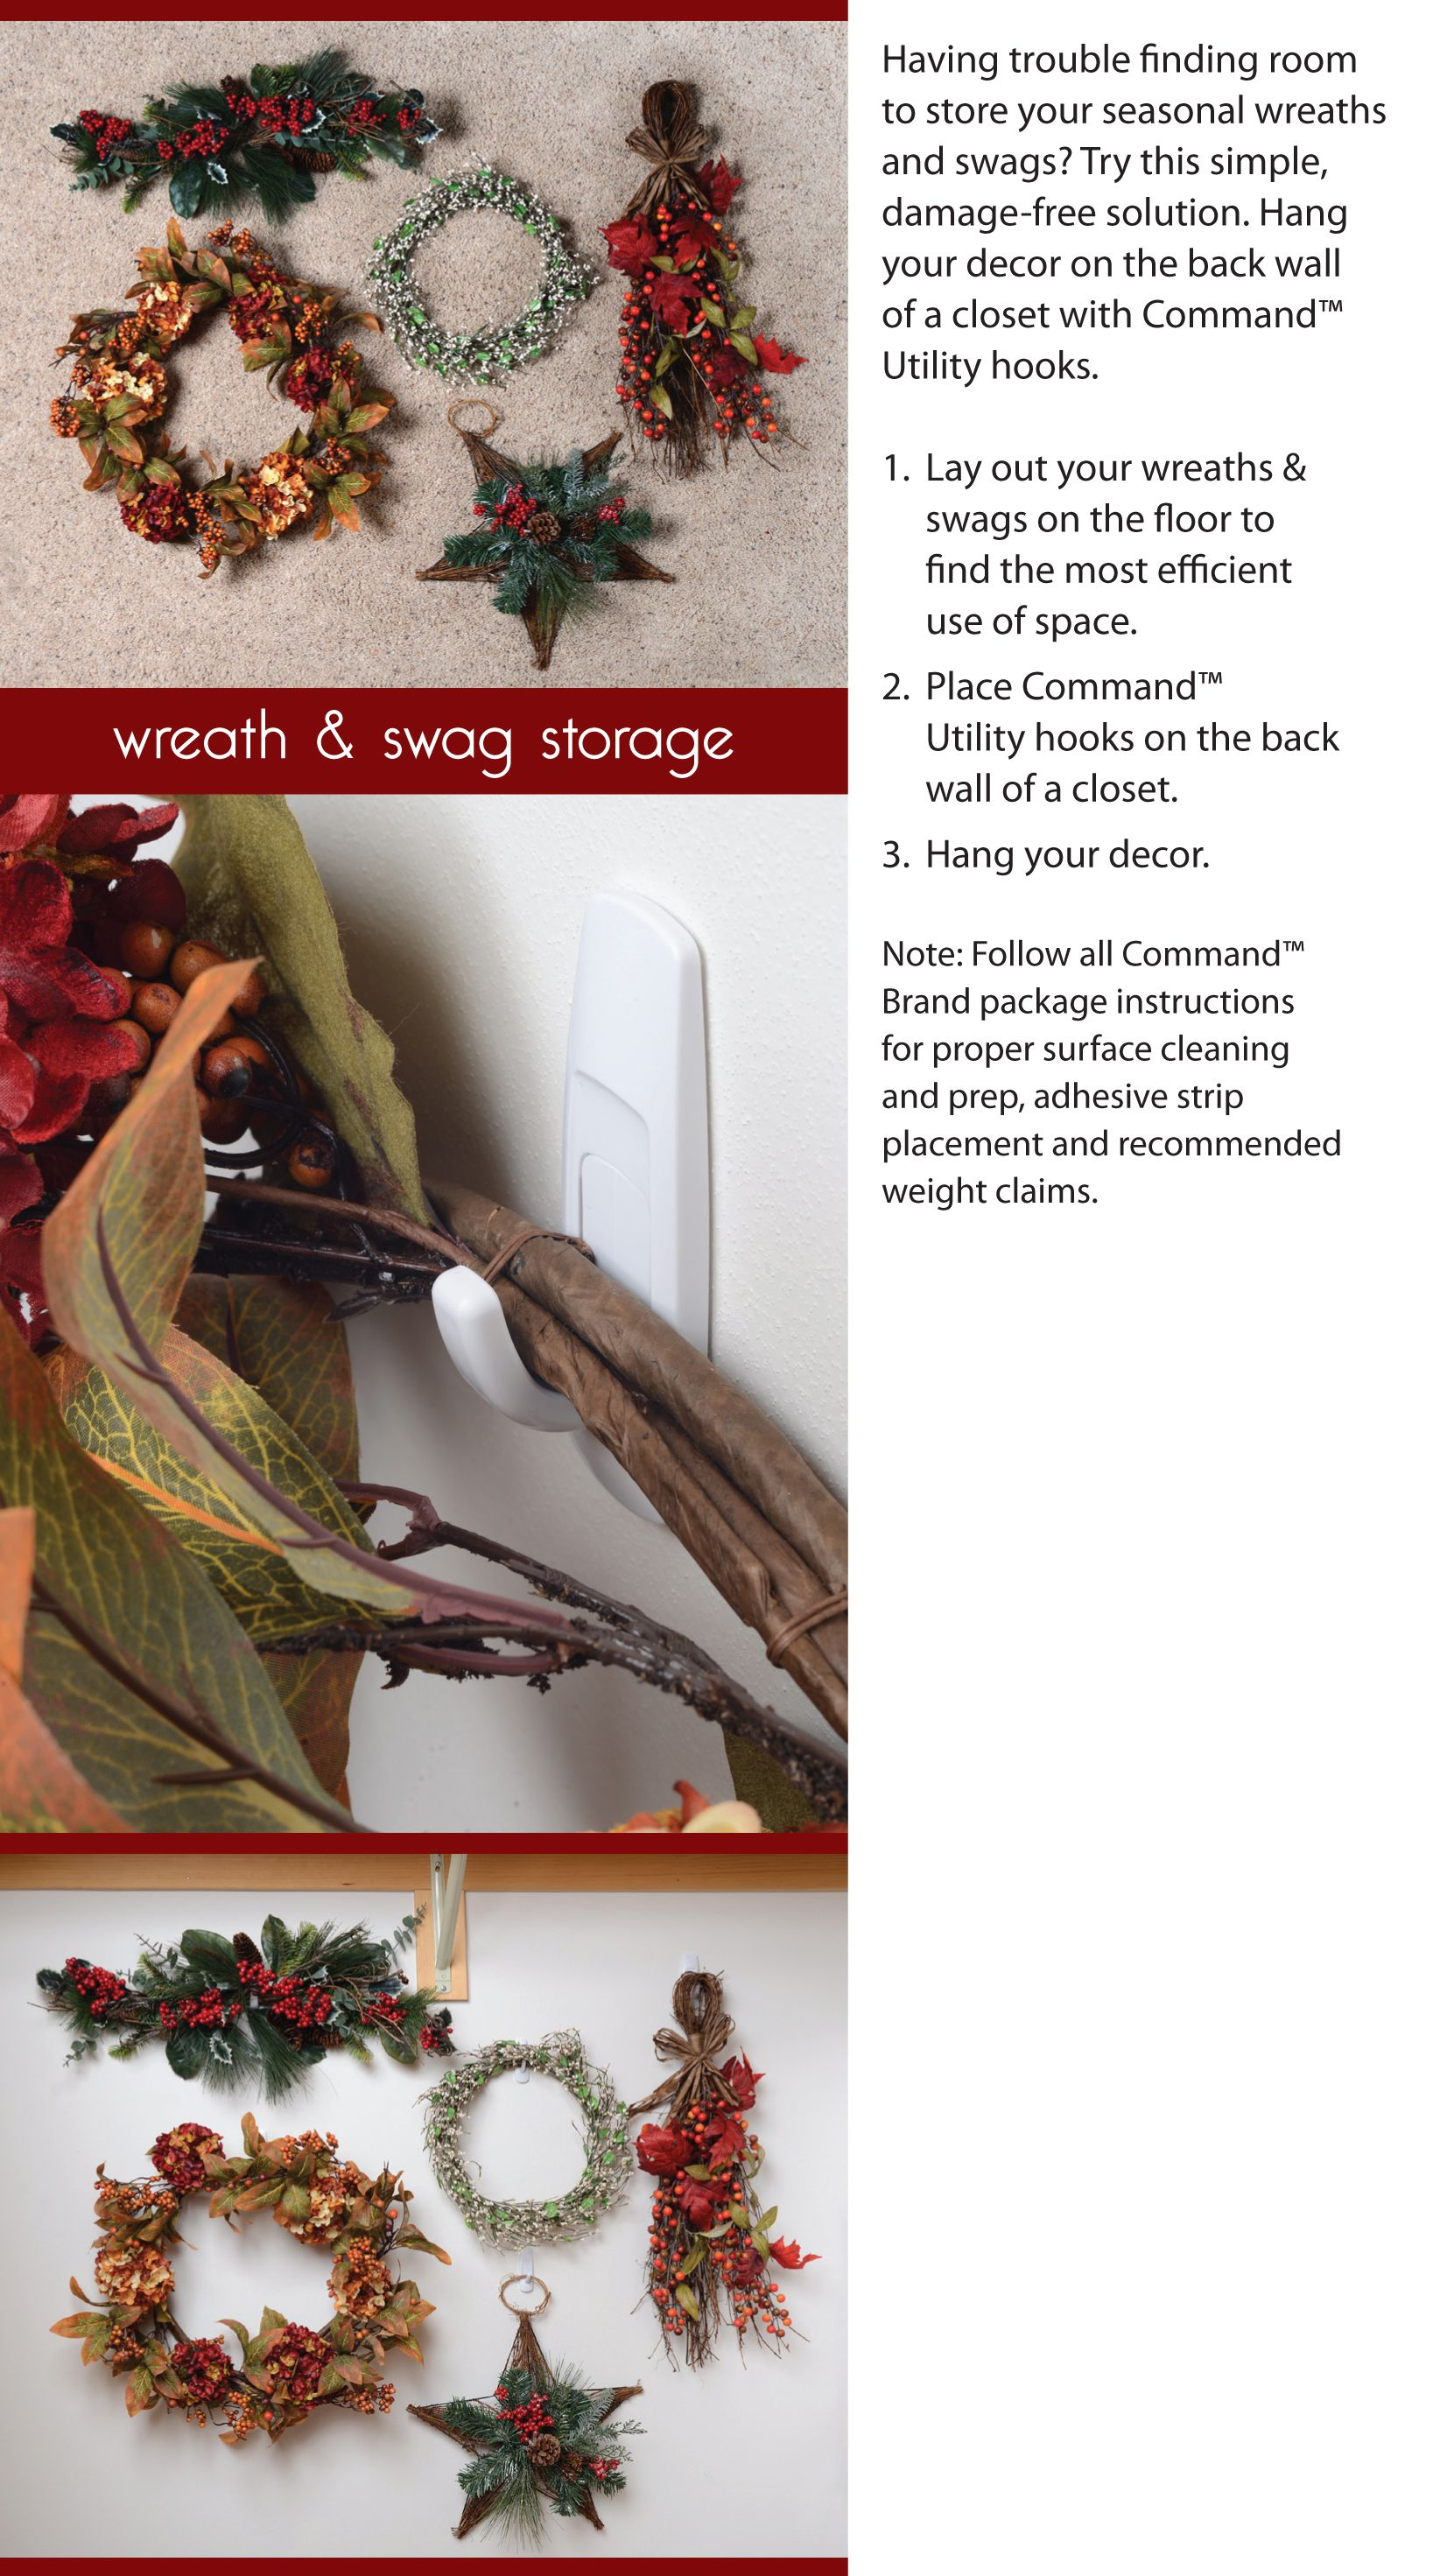 Having Trouble Finding Room To Store Your Seasonal Wreaths And